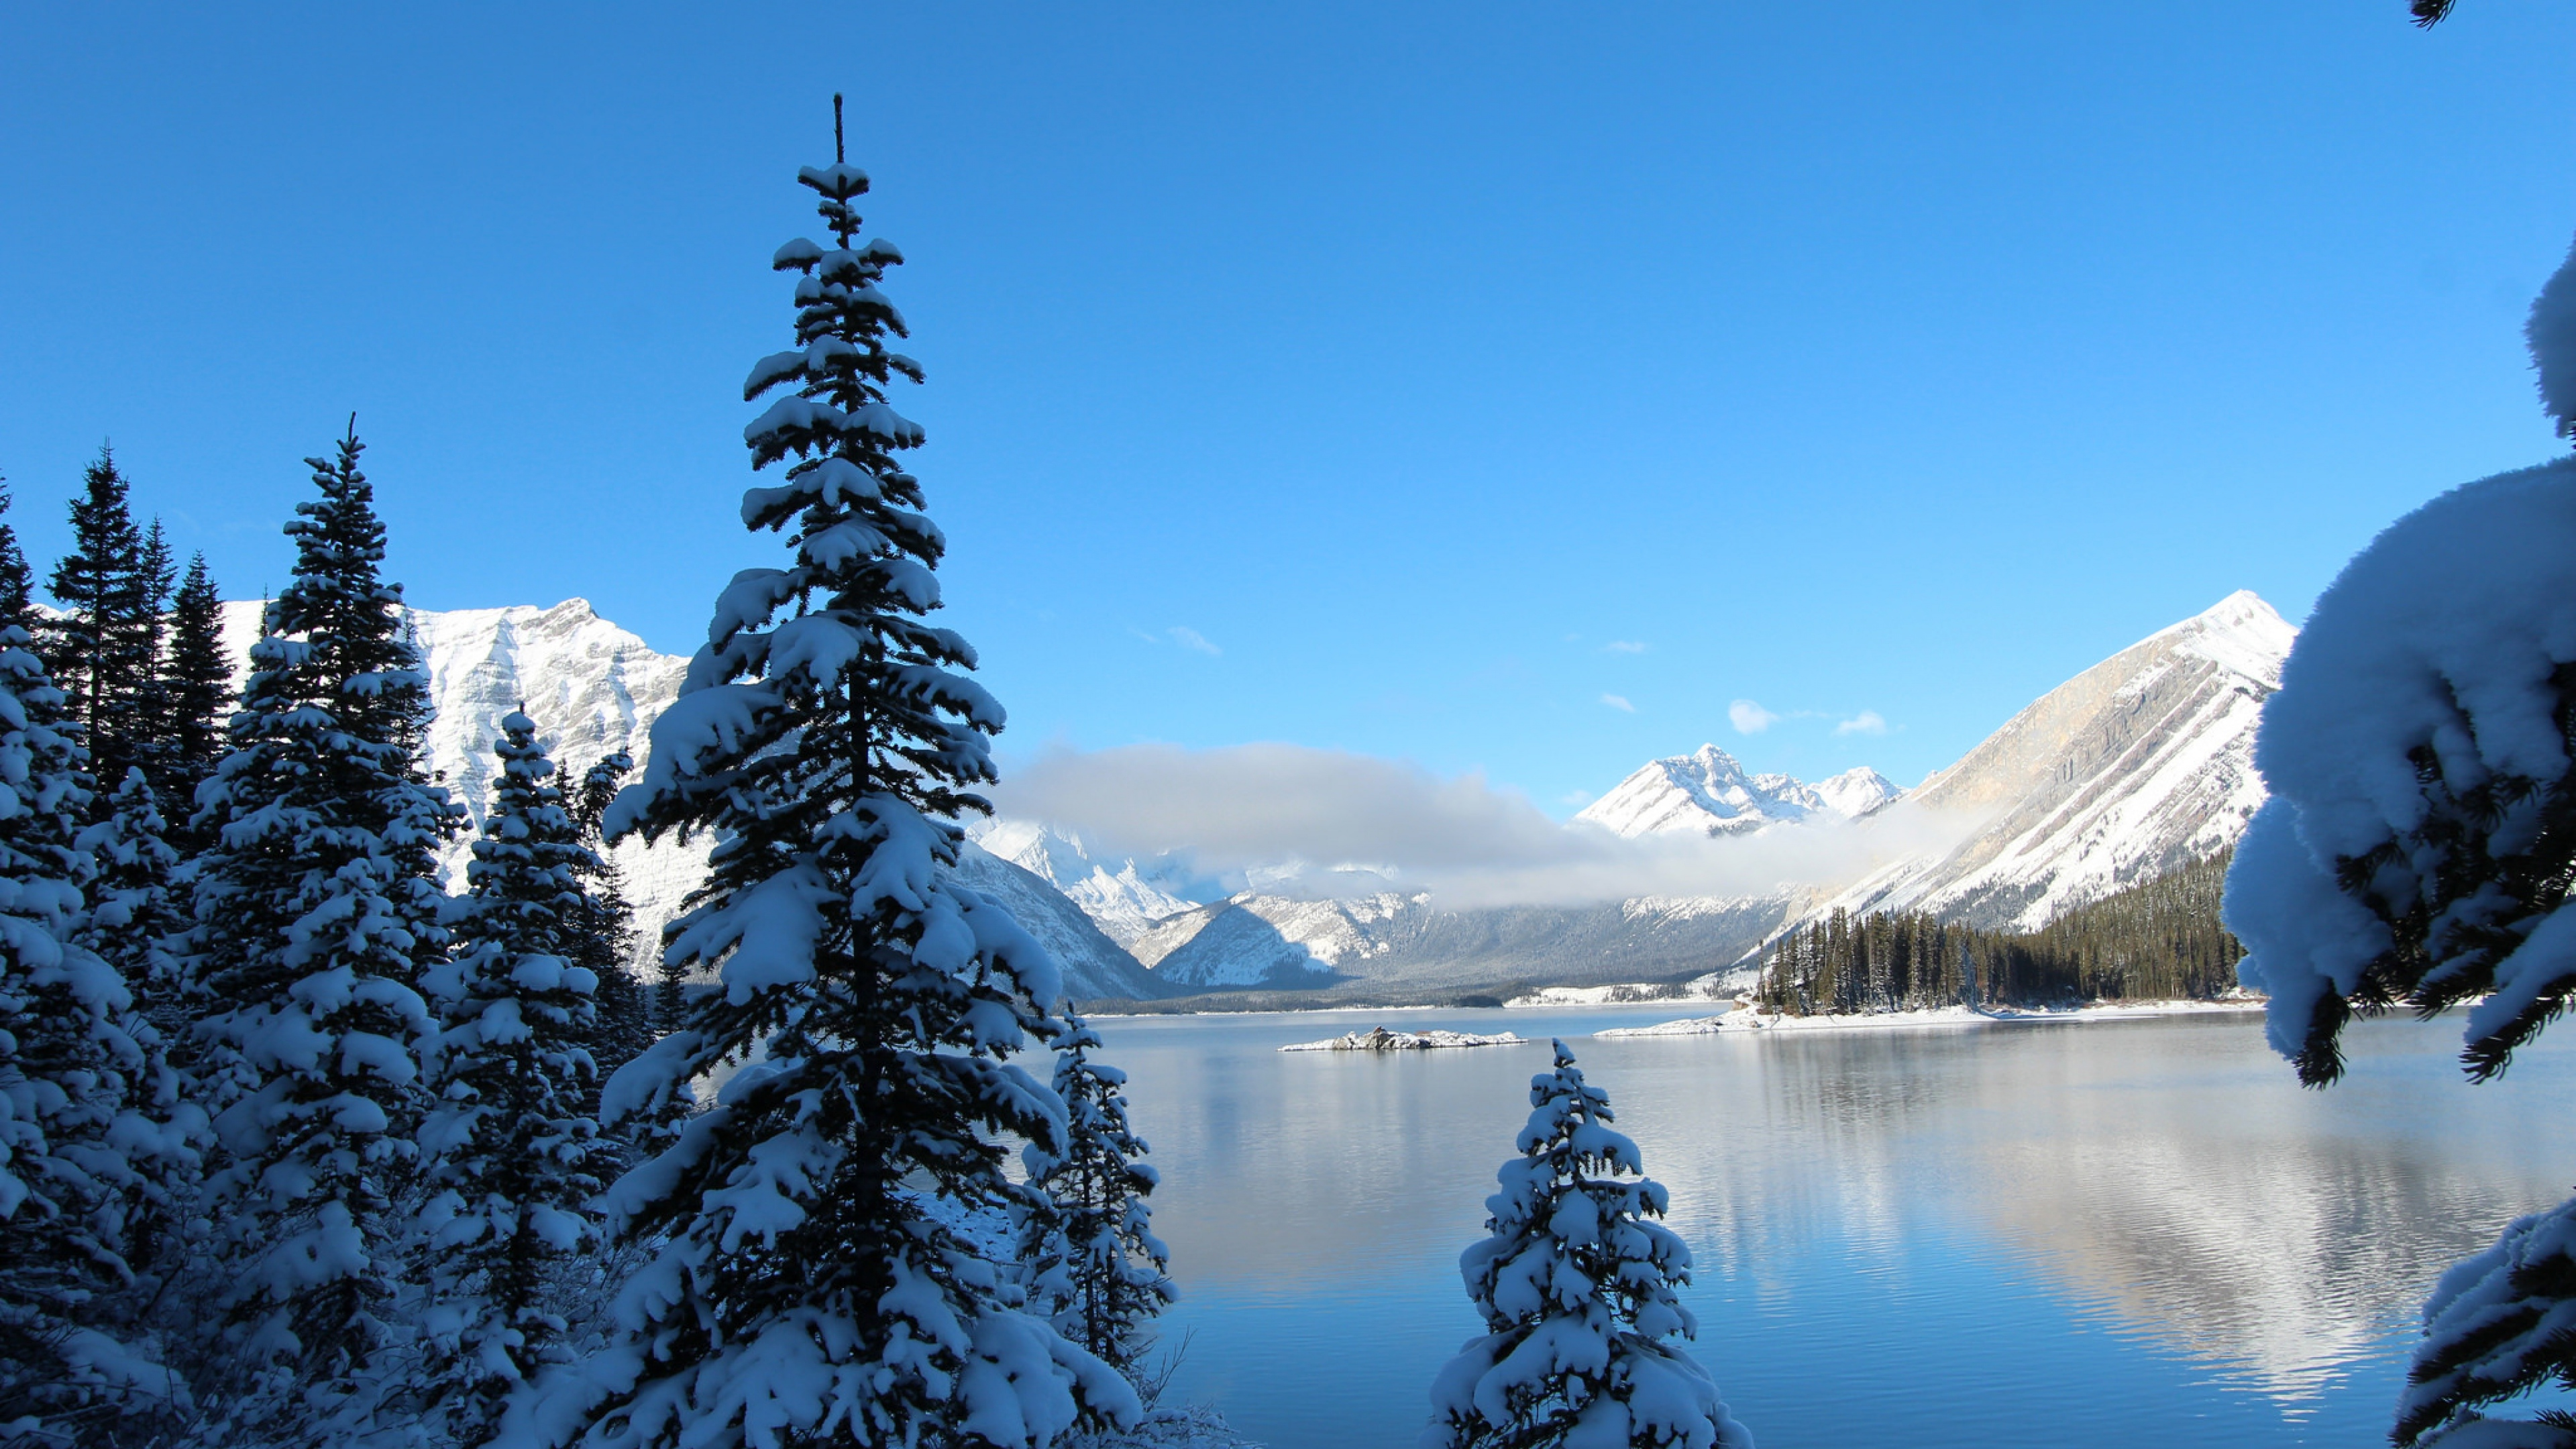 1366x768 winter snow lake mountain 1366x768 resolution hd 4k